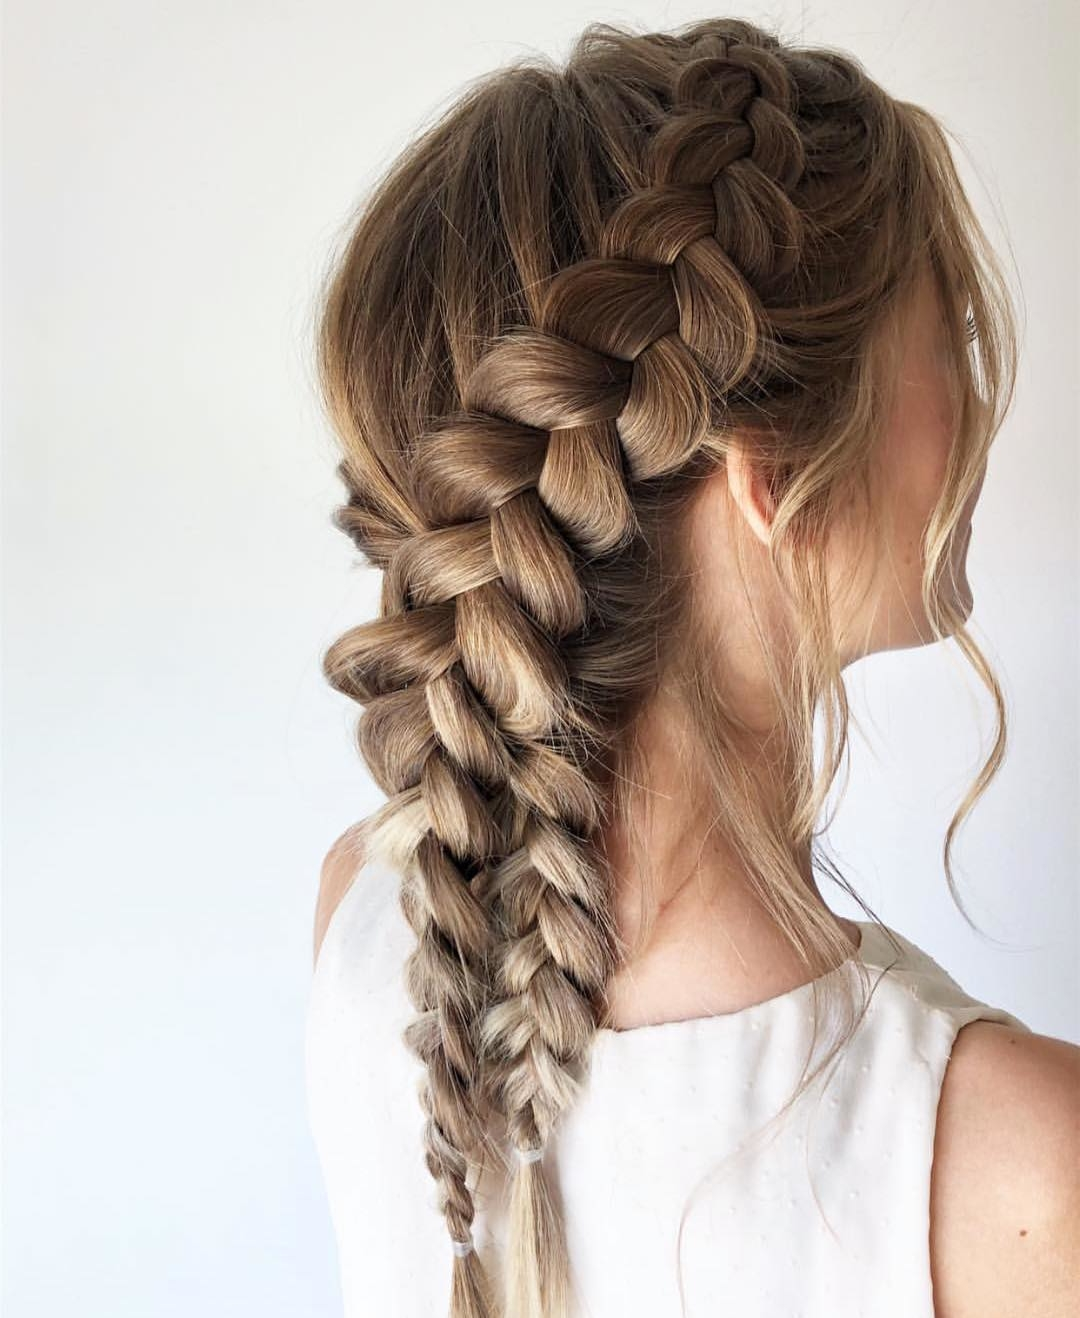 braided-hairstyles-girls